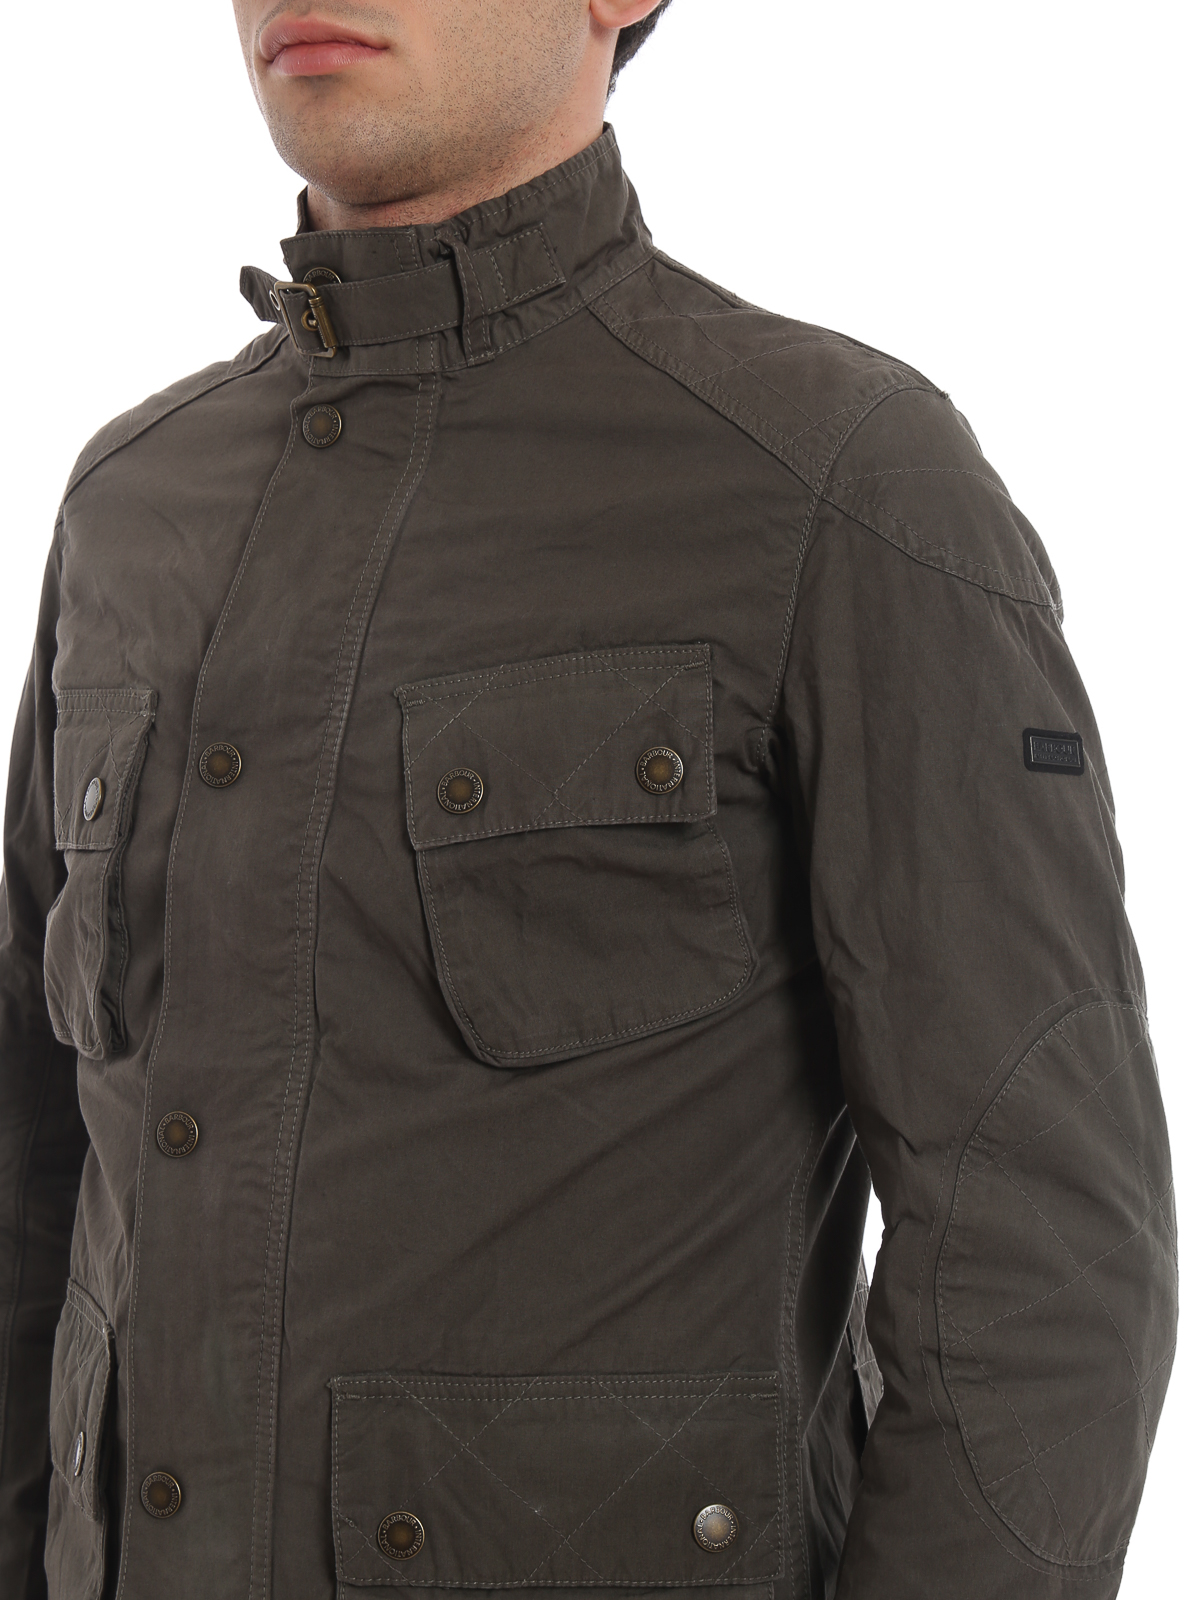 competitive price 5a263 061cd Barbour - Giacca Smokey in cotone - giacche casual ...